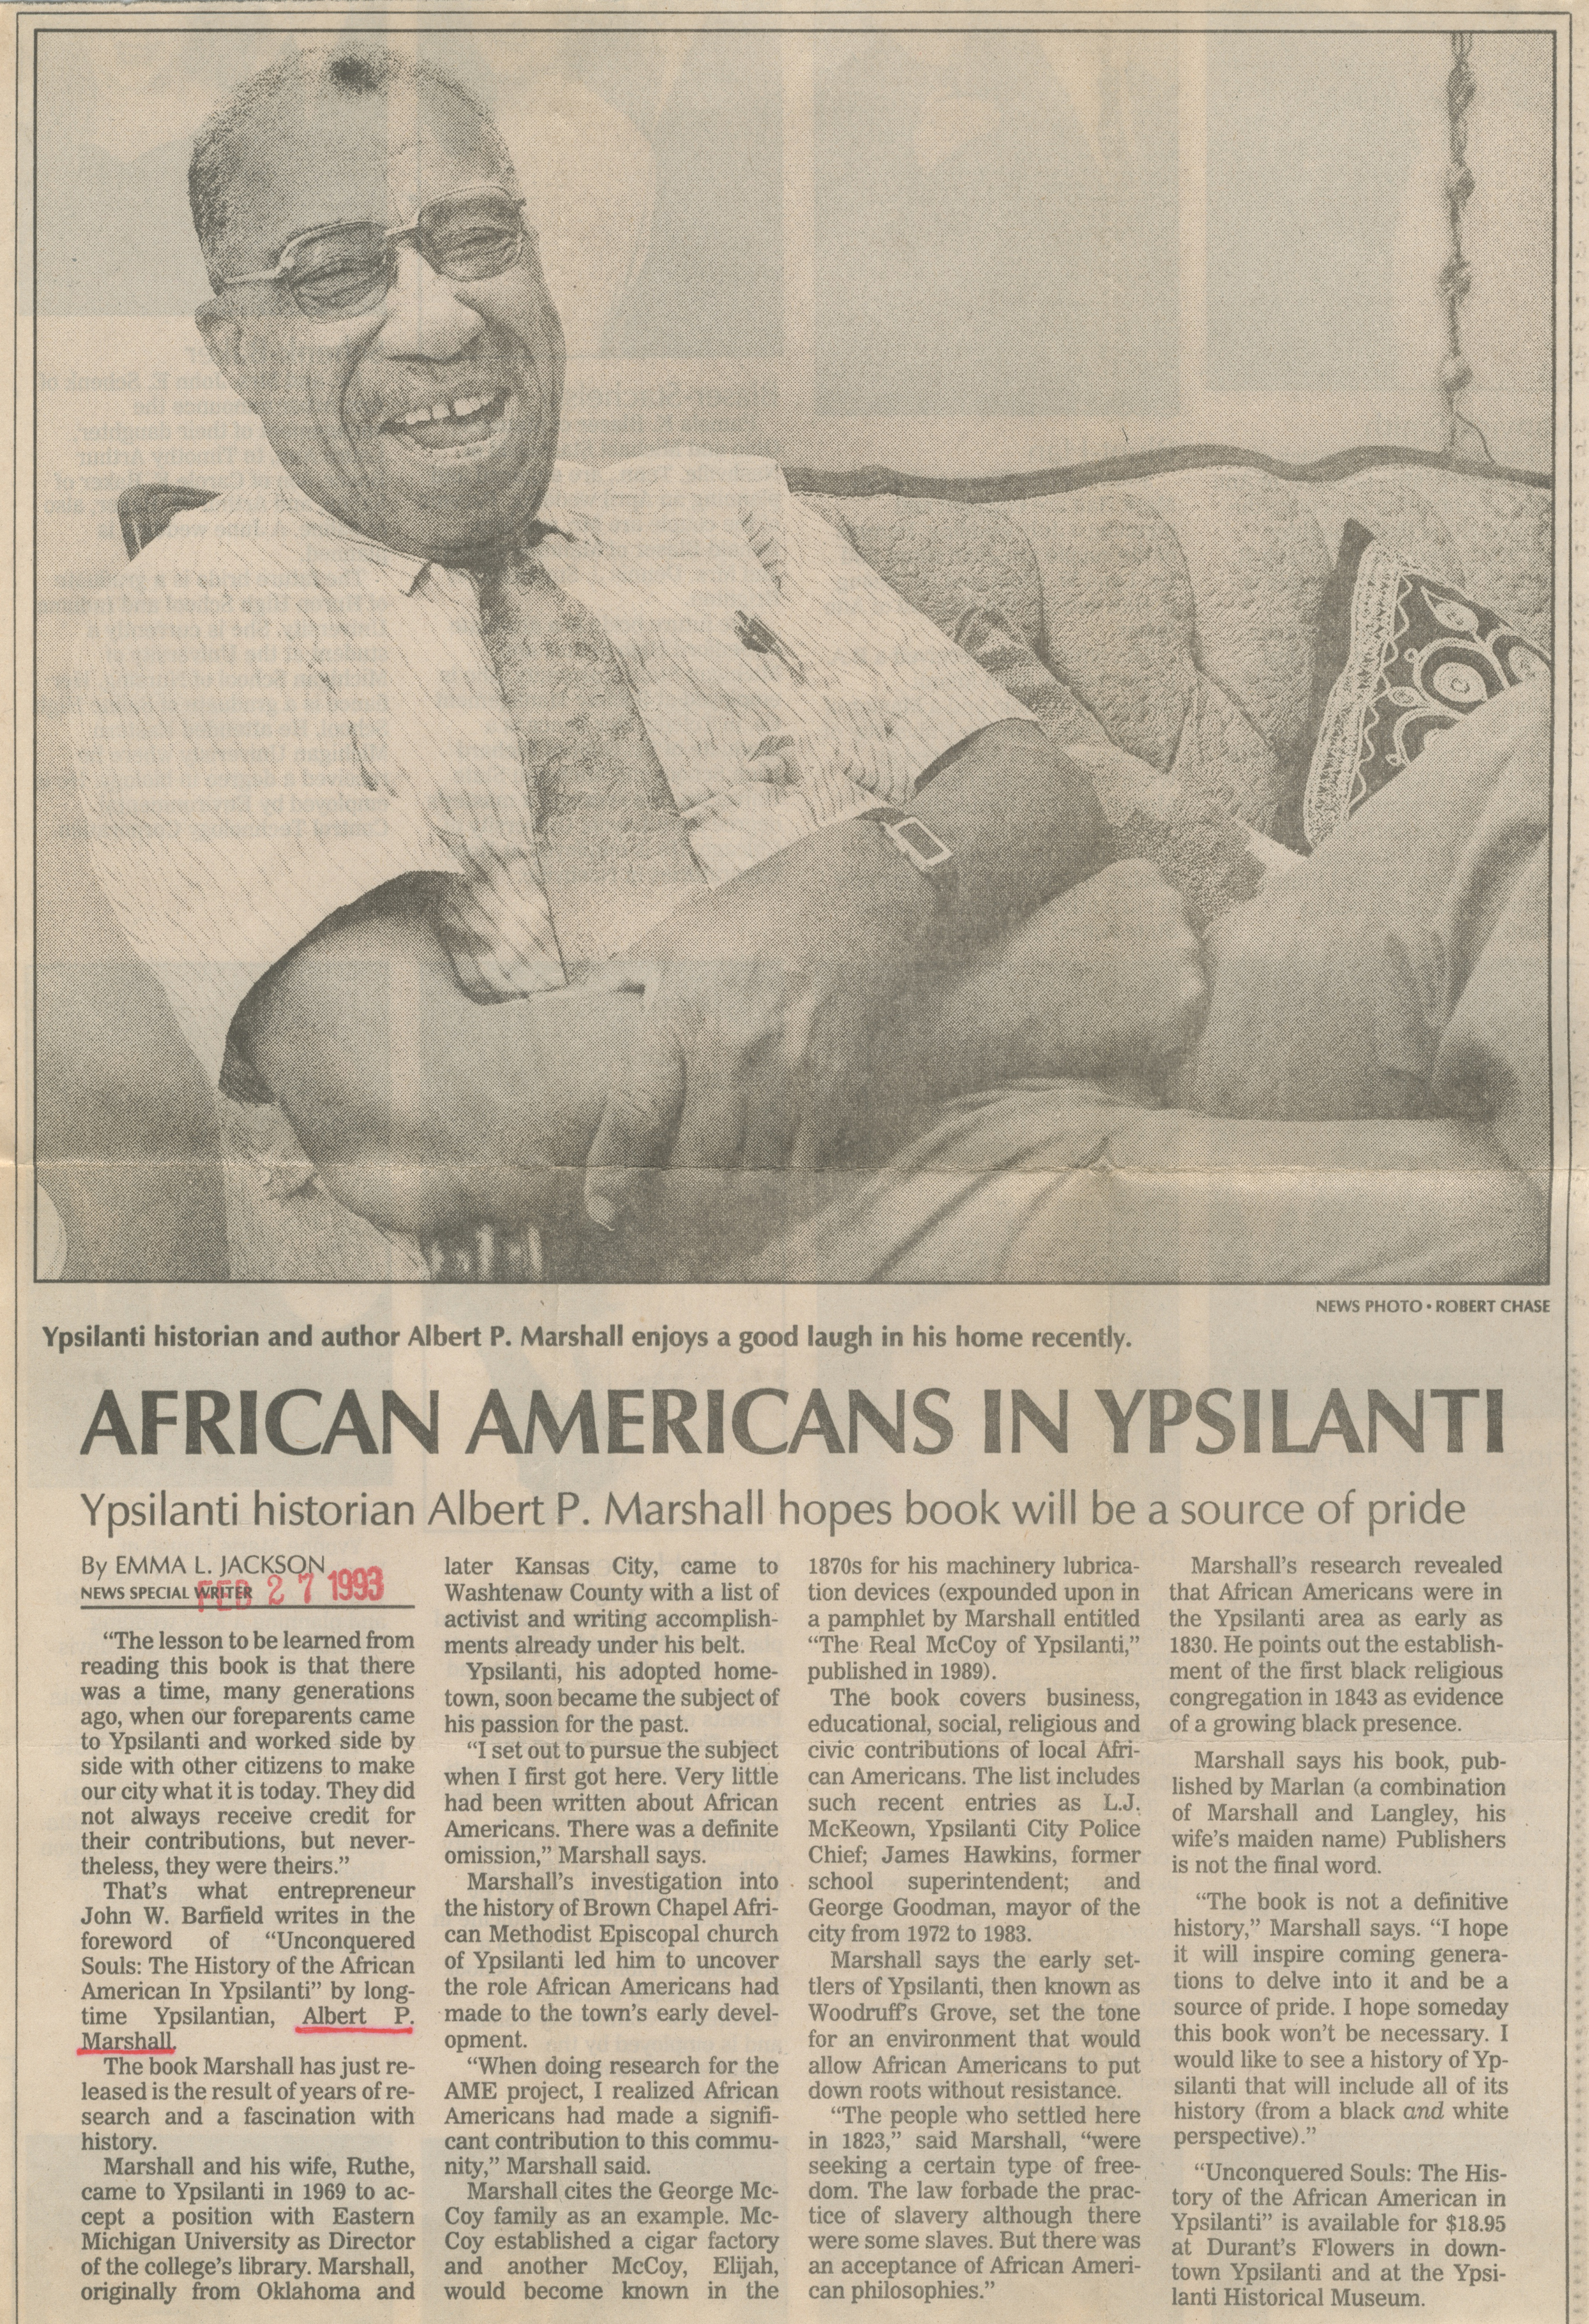 African Americans In Ypsilanti image